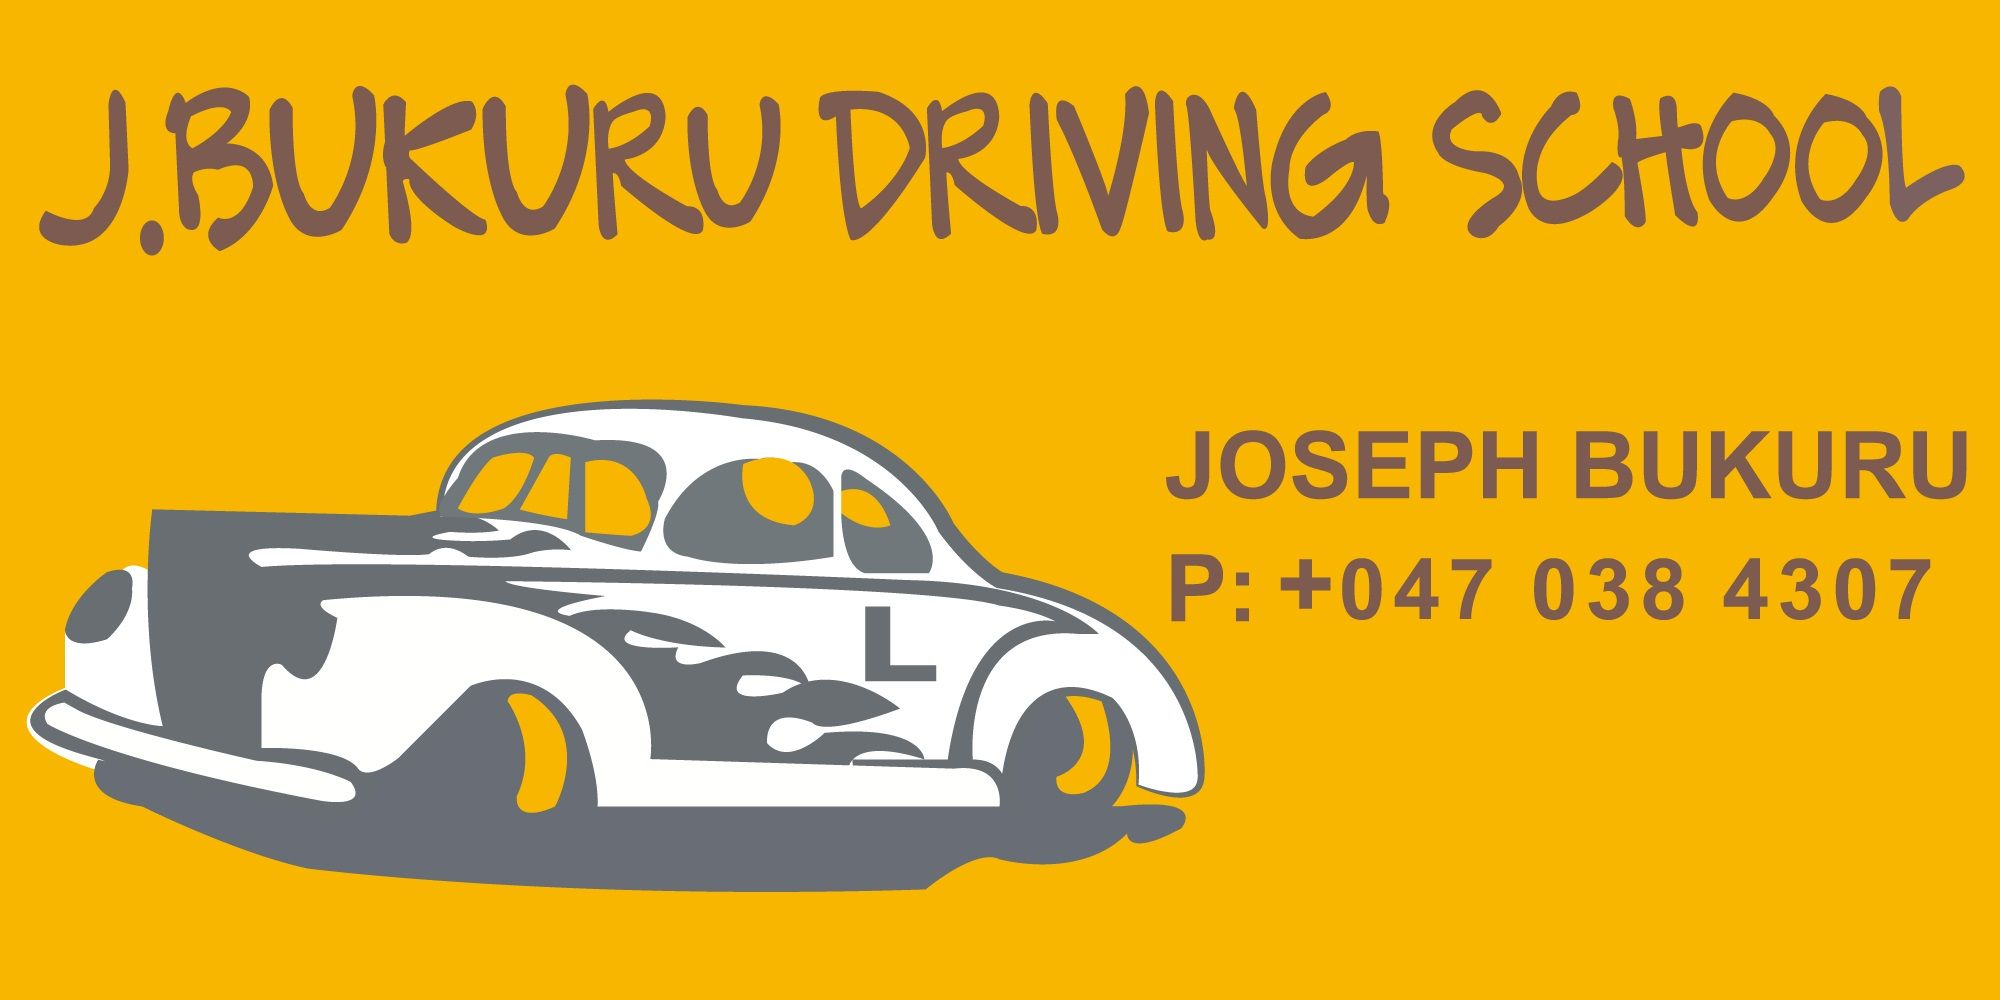 Private Driving Instructors Near Me >> J Bukuru Driving School Has A Greatest Dream To Help And